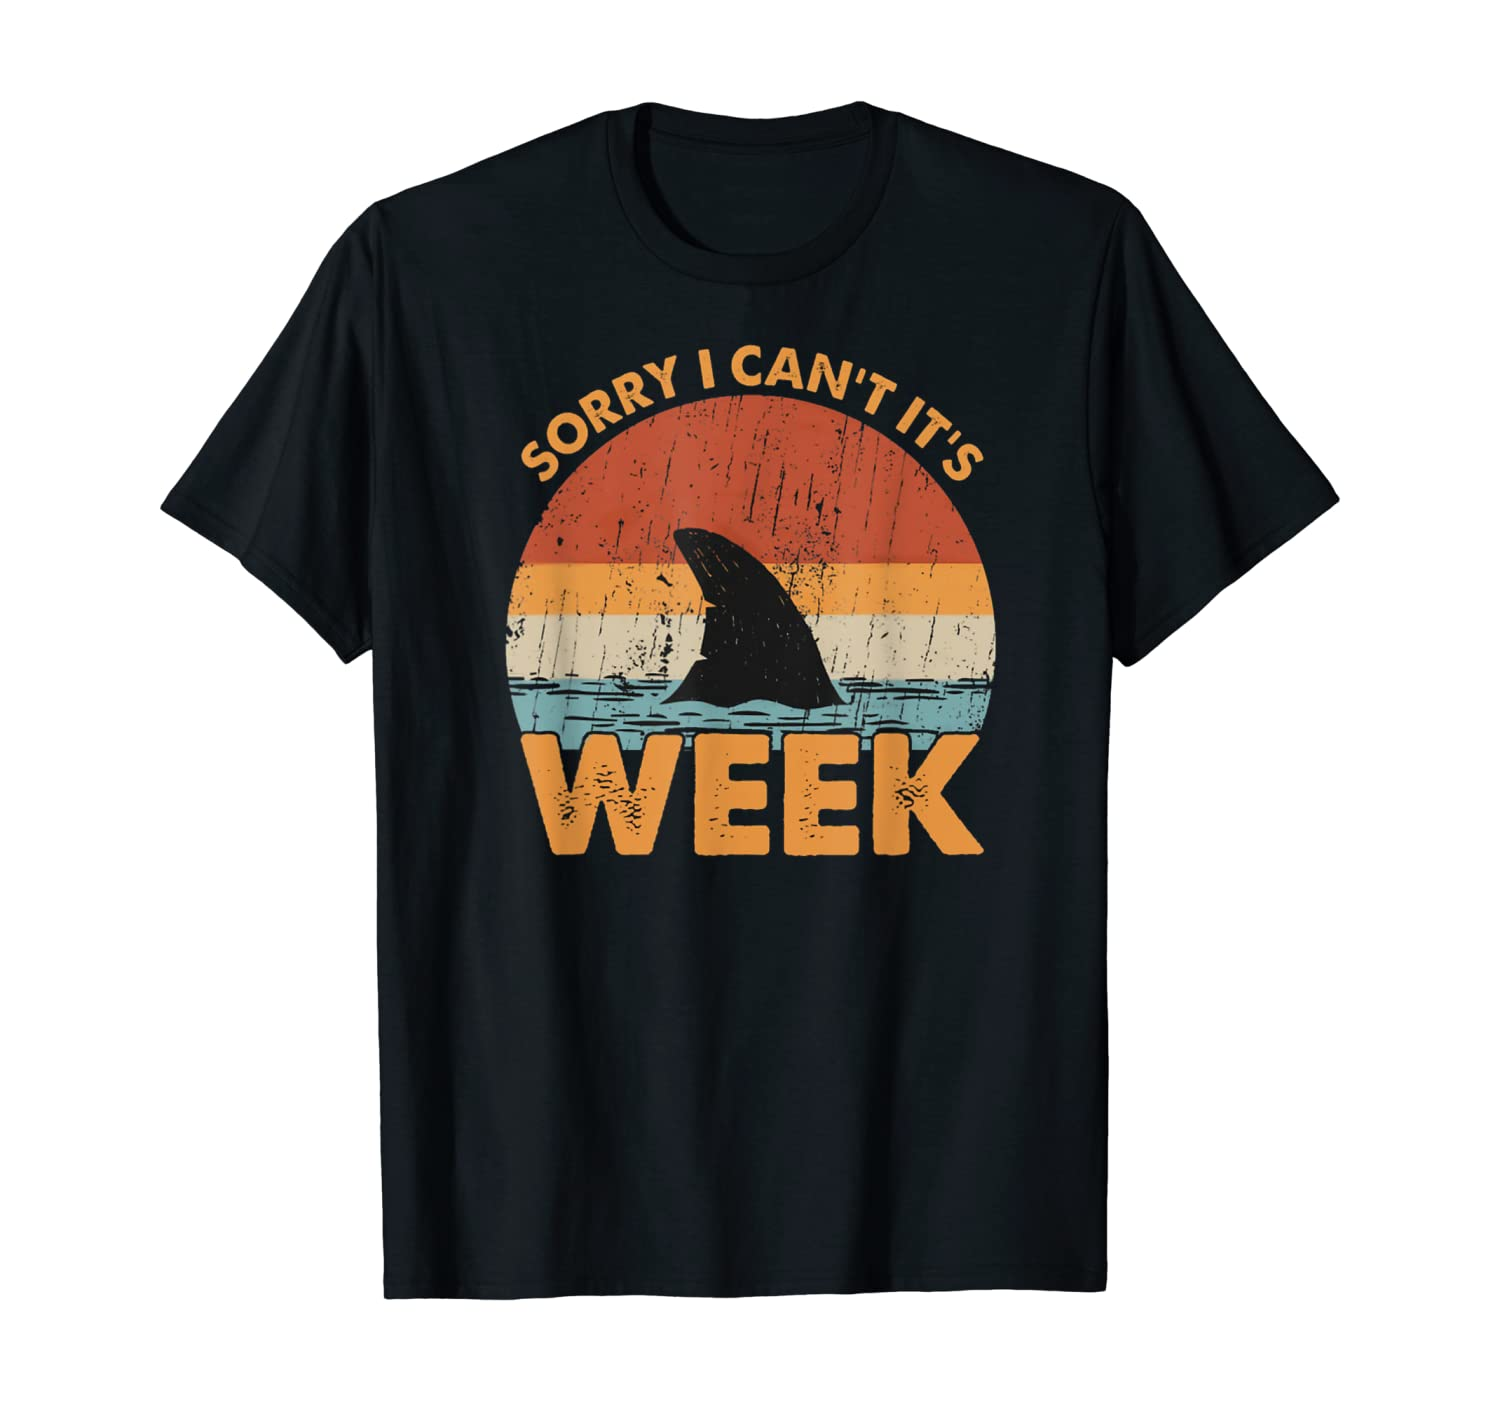 Sorry i can't it's Week Funny Shark Gift T-Shirt T-Shirt